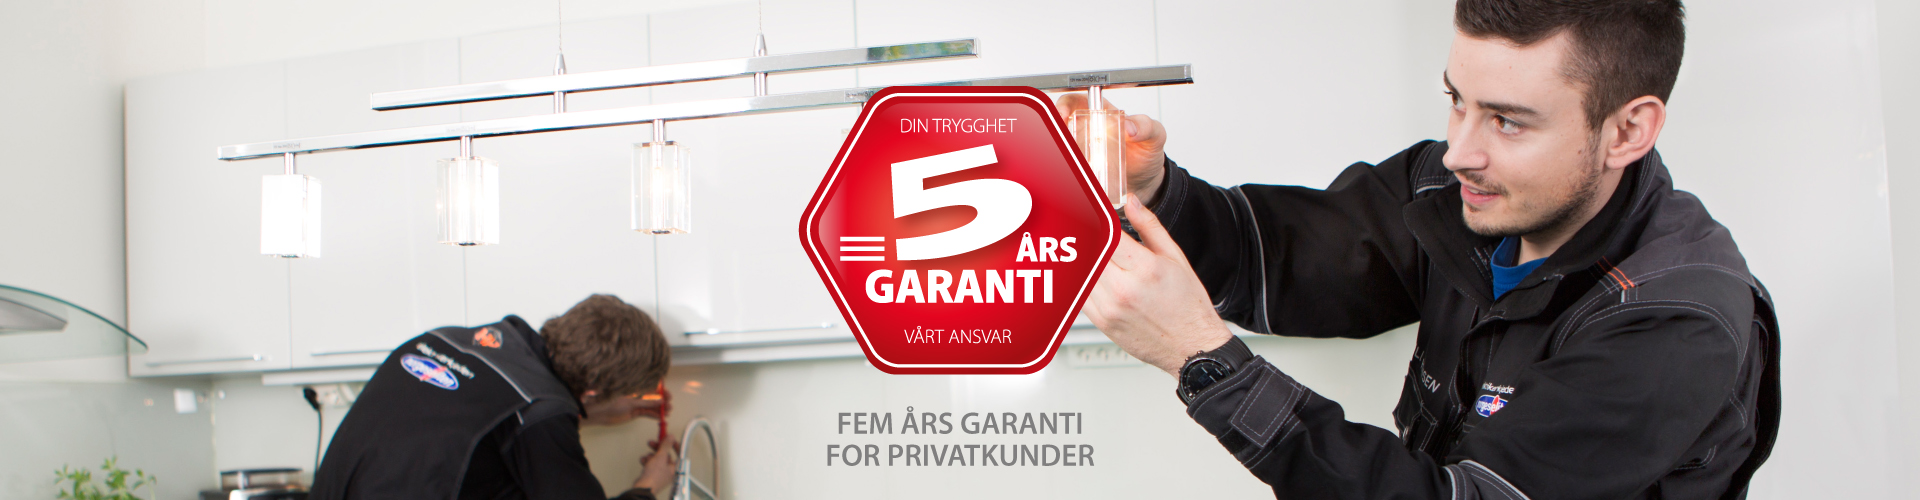 5 års garanti for privatkunder